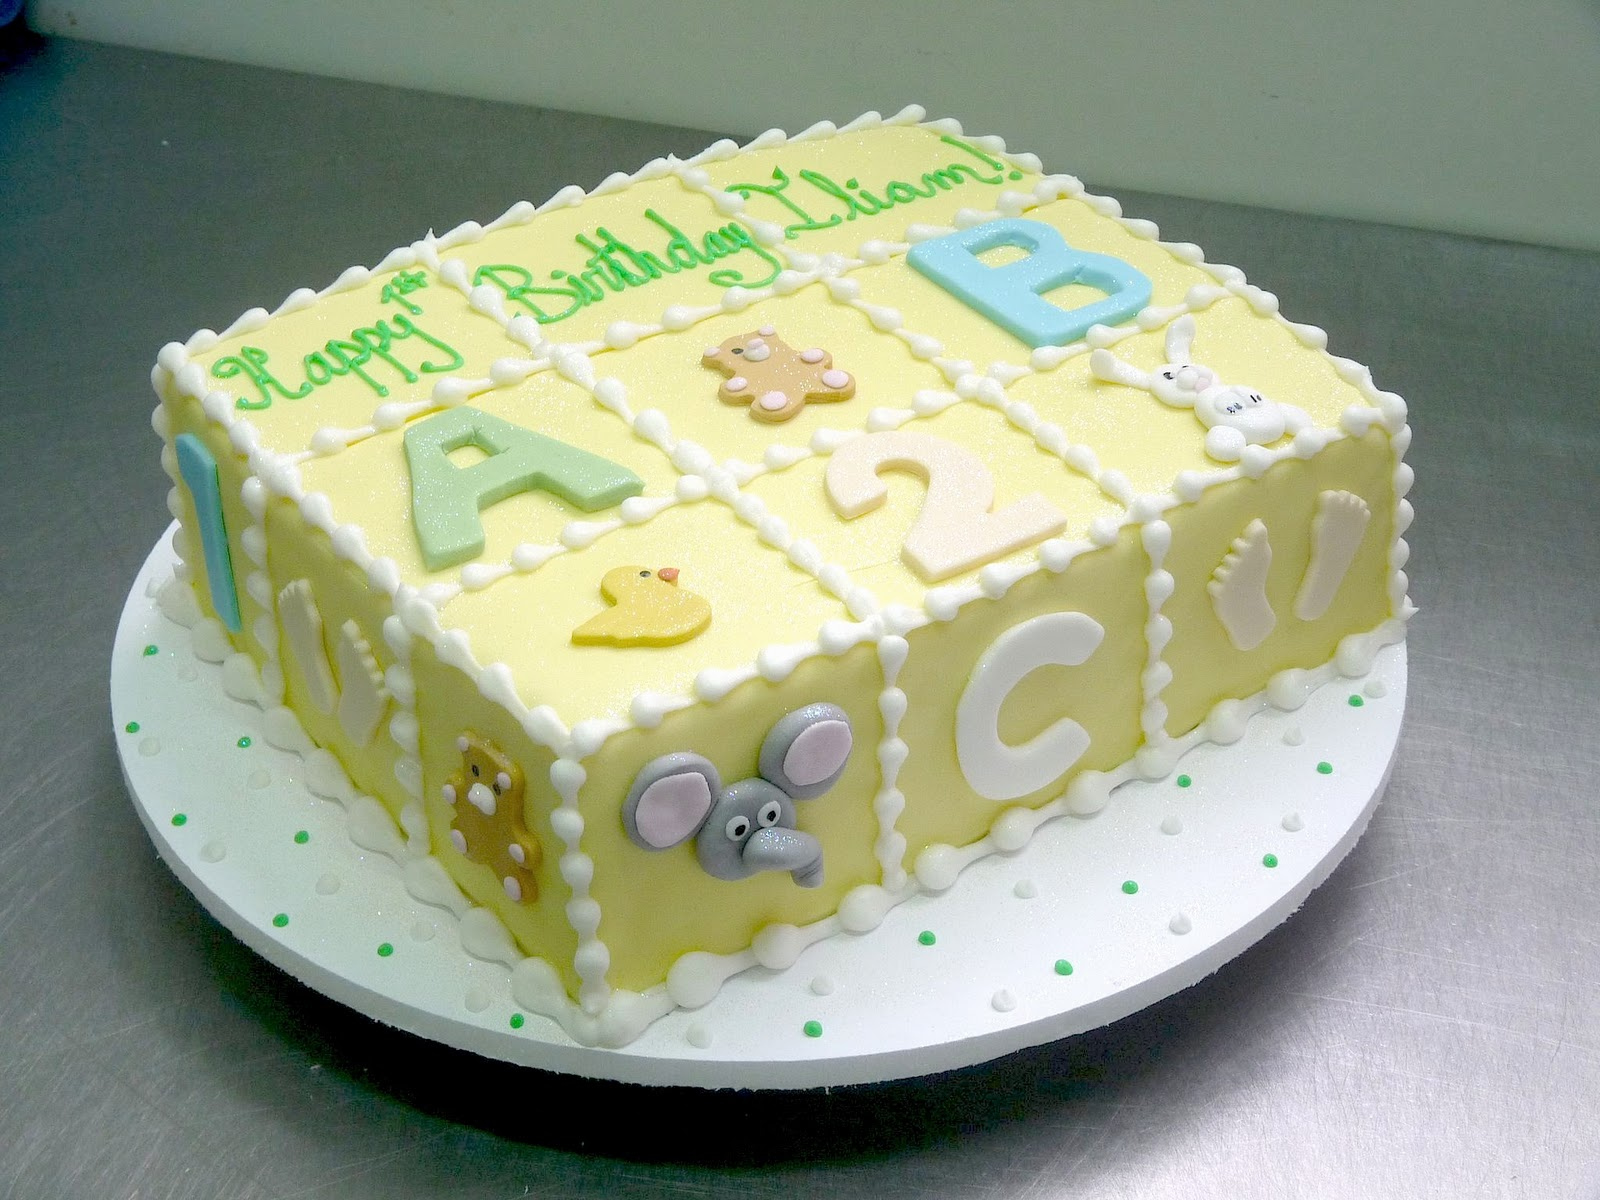 Pictures Of Baby Shower Cake Designs : Baby Shower Cakes! - CafeMom